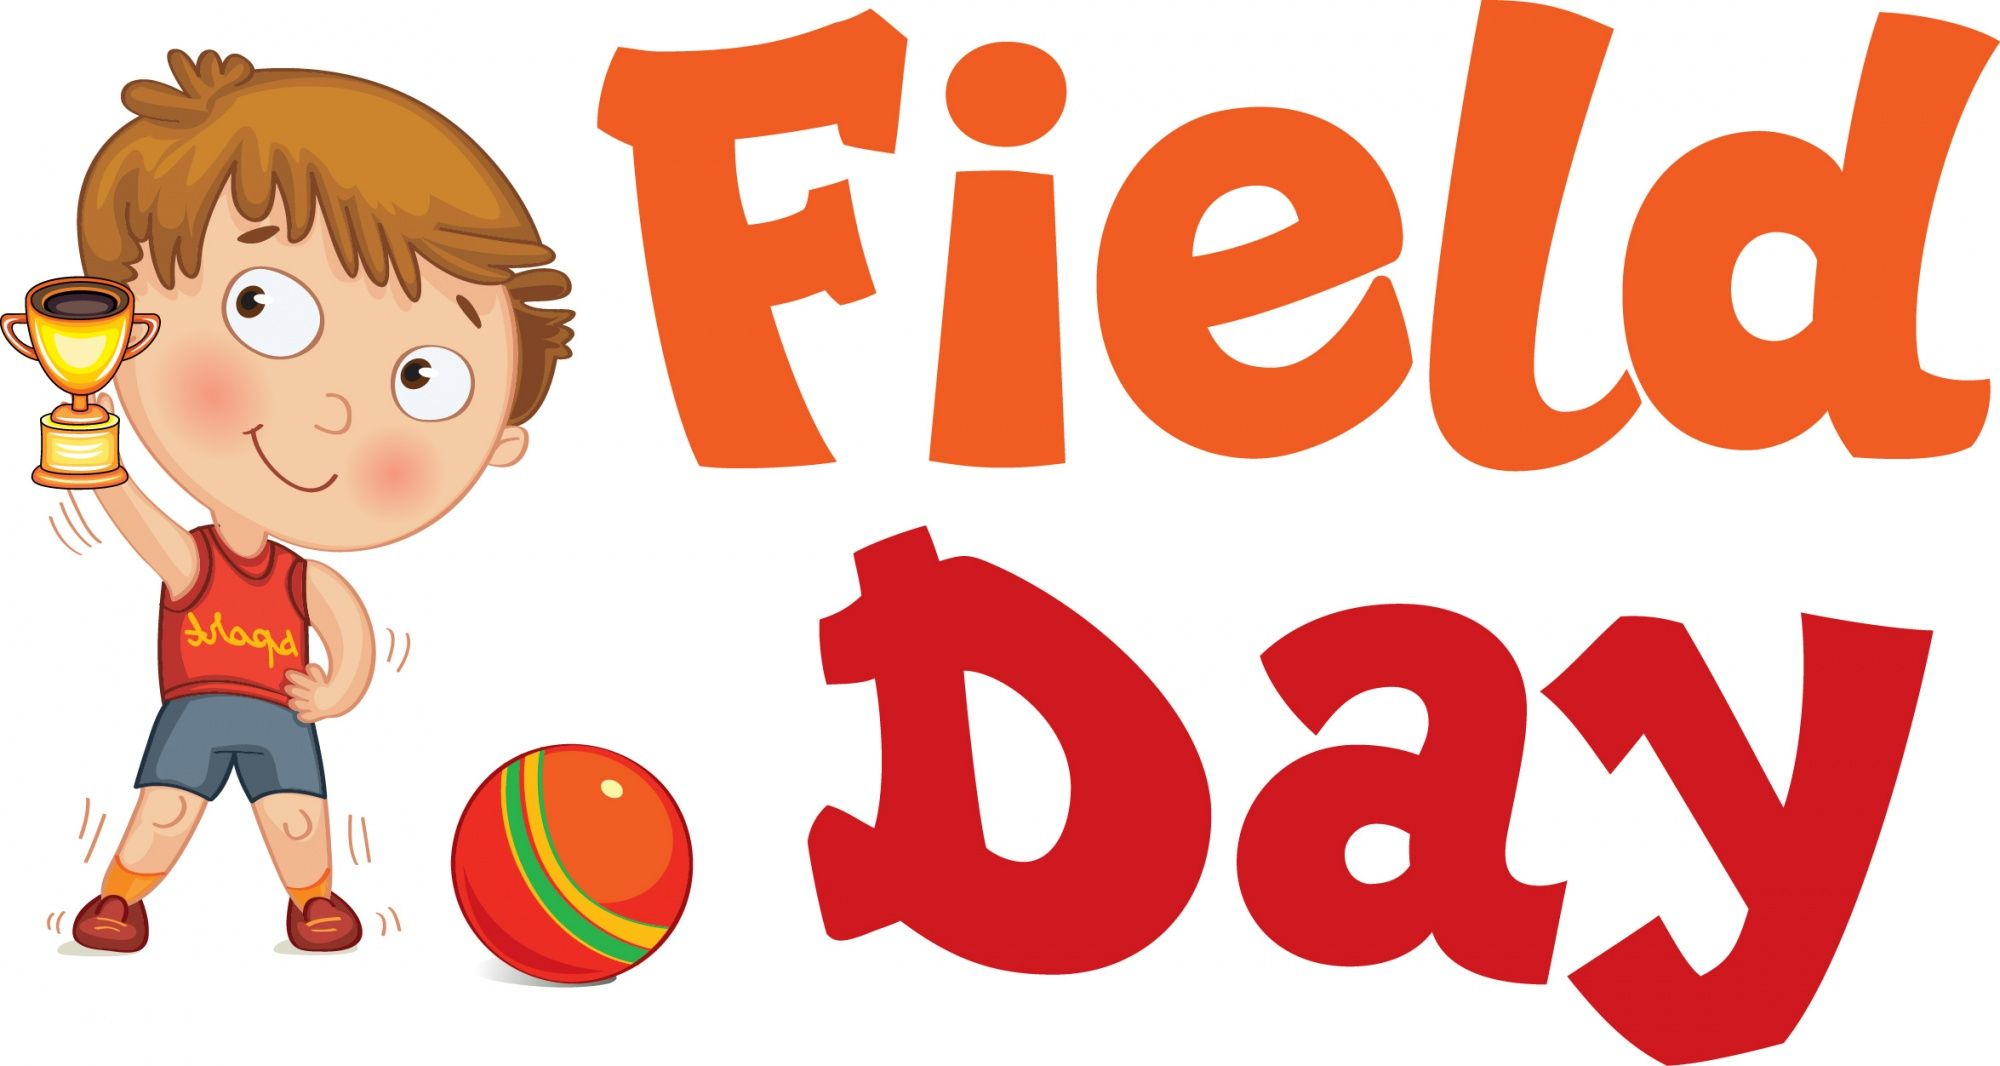 field day clipart clipart kid scrapbook pinterest fields rh pinterest co uk field day clip art teachers field day games clip art